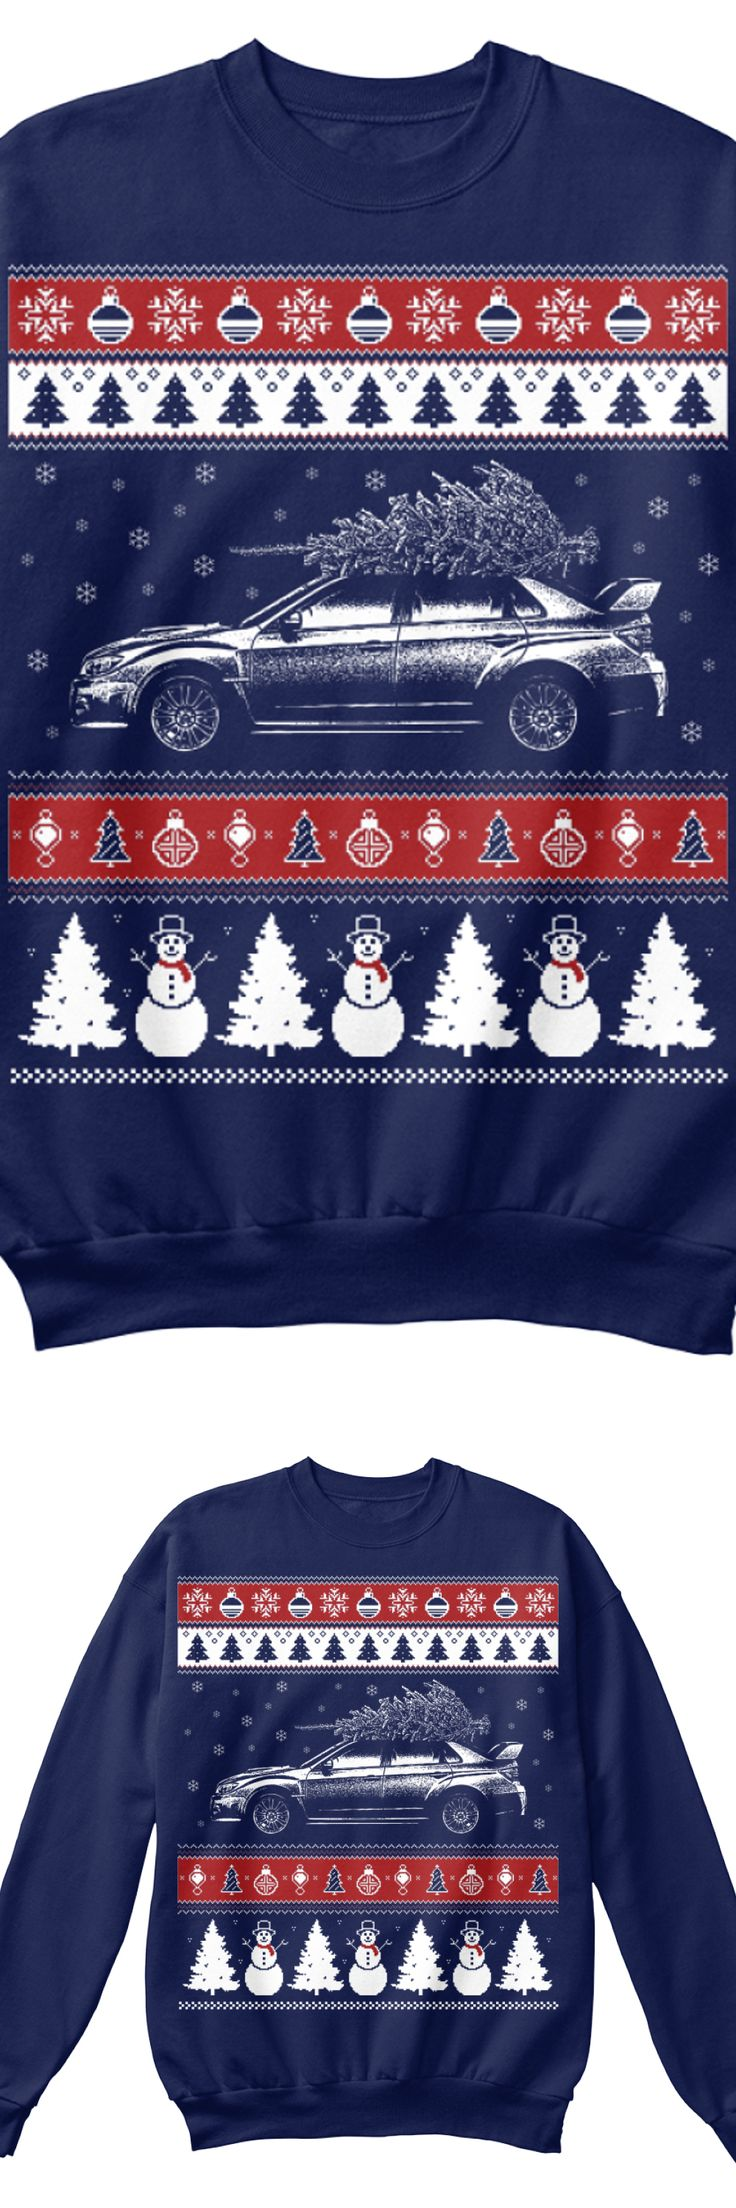 Subaru WRX Christmas Sweater! Exclusive design you can only get here. Comes in 3 colors, order yours before they are gone!